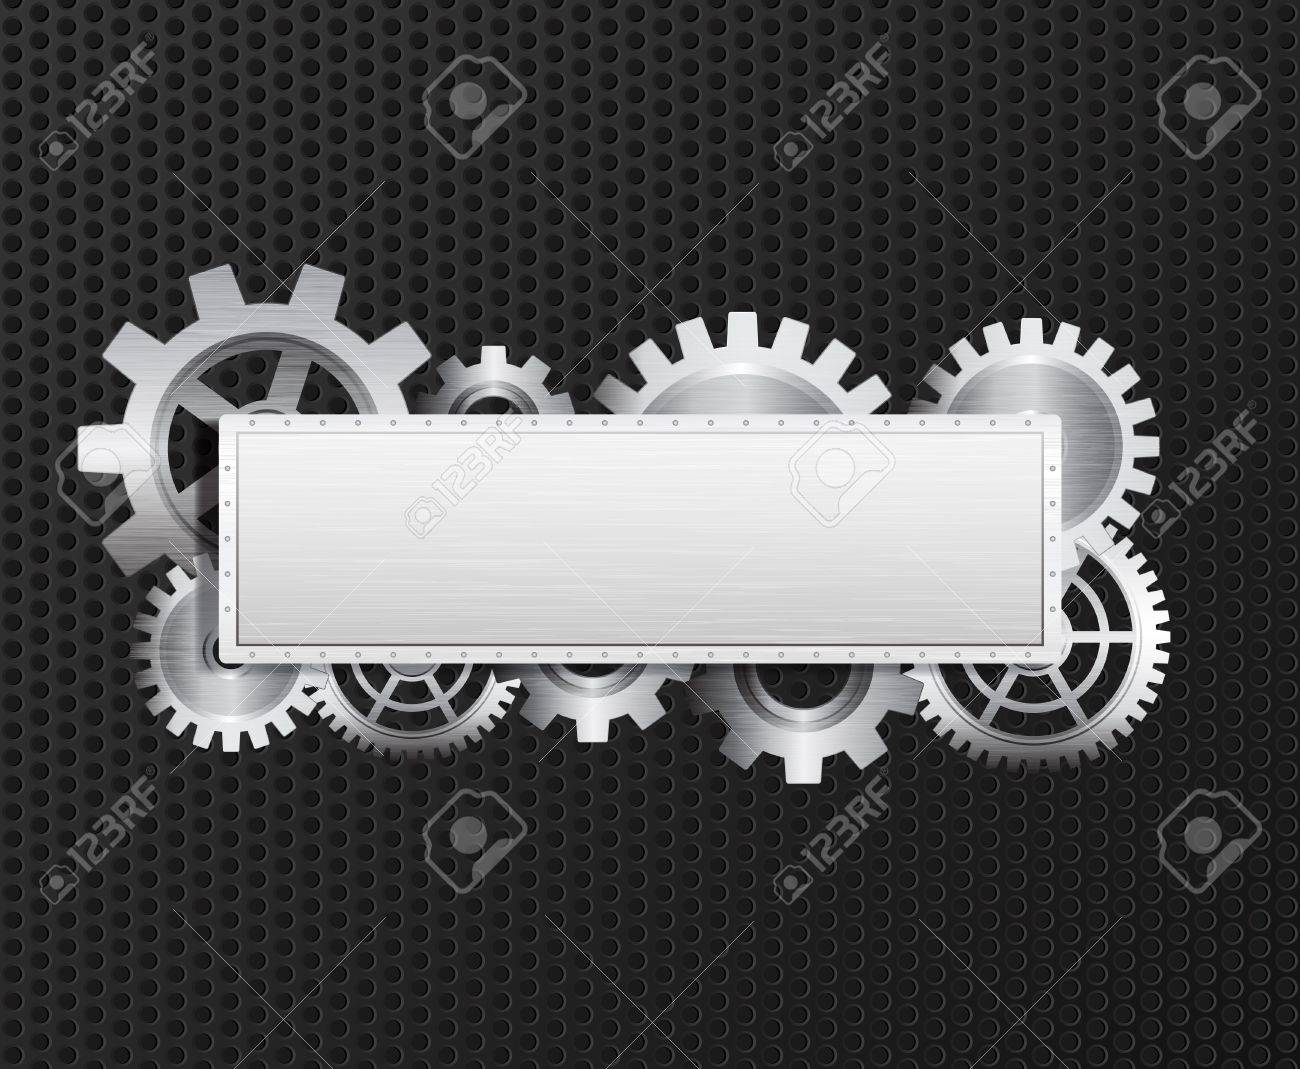 banner with gears, brushed metal texture, metal grid. Eps10 Stock Vector - 9239047